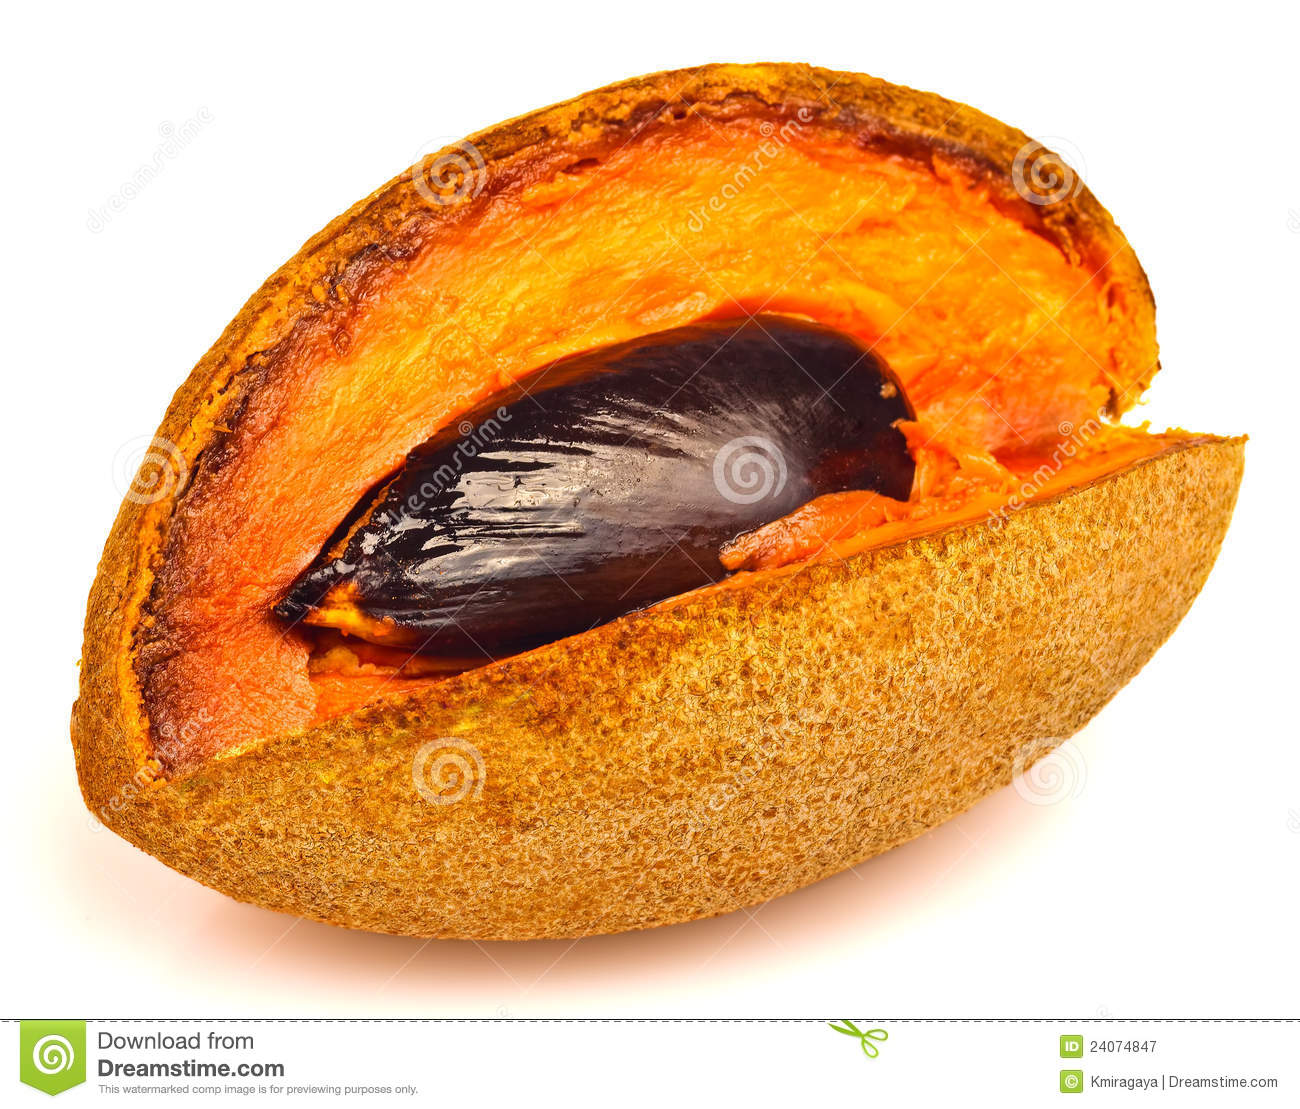 Ripe Mamey Fruit Royalty Free Stock Photography - Image: 24074847